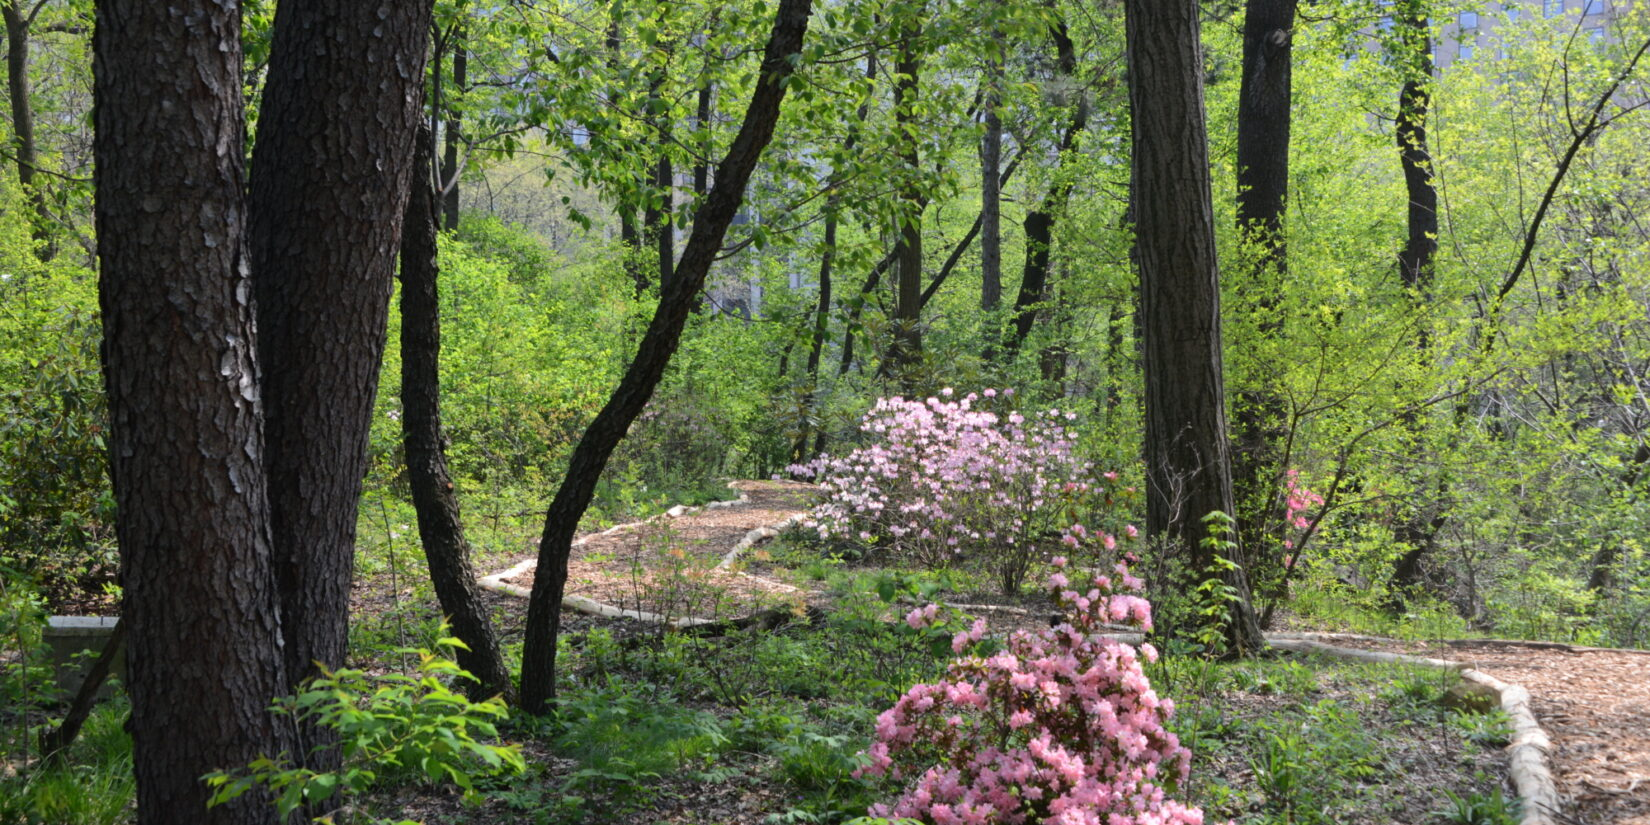 A path winds through a landscape of pink blossoms and trees with spring-green leaves